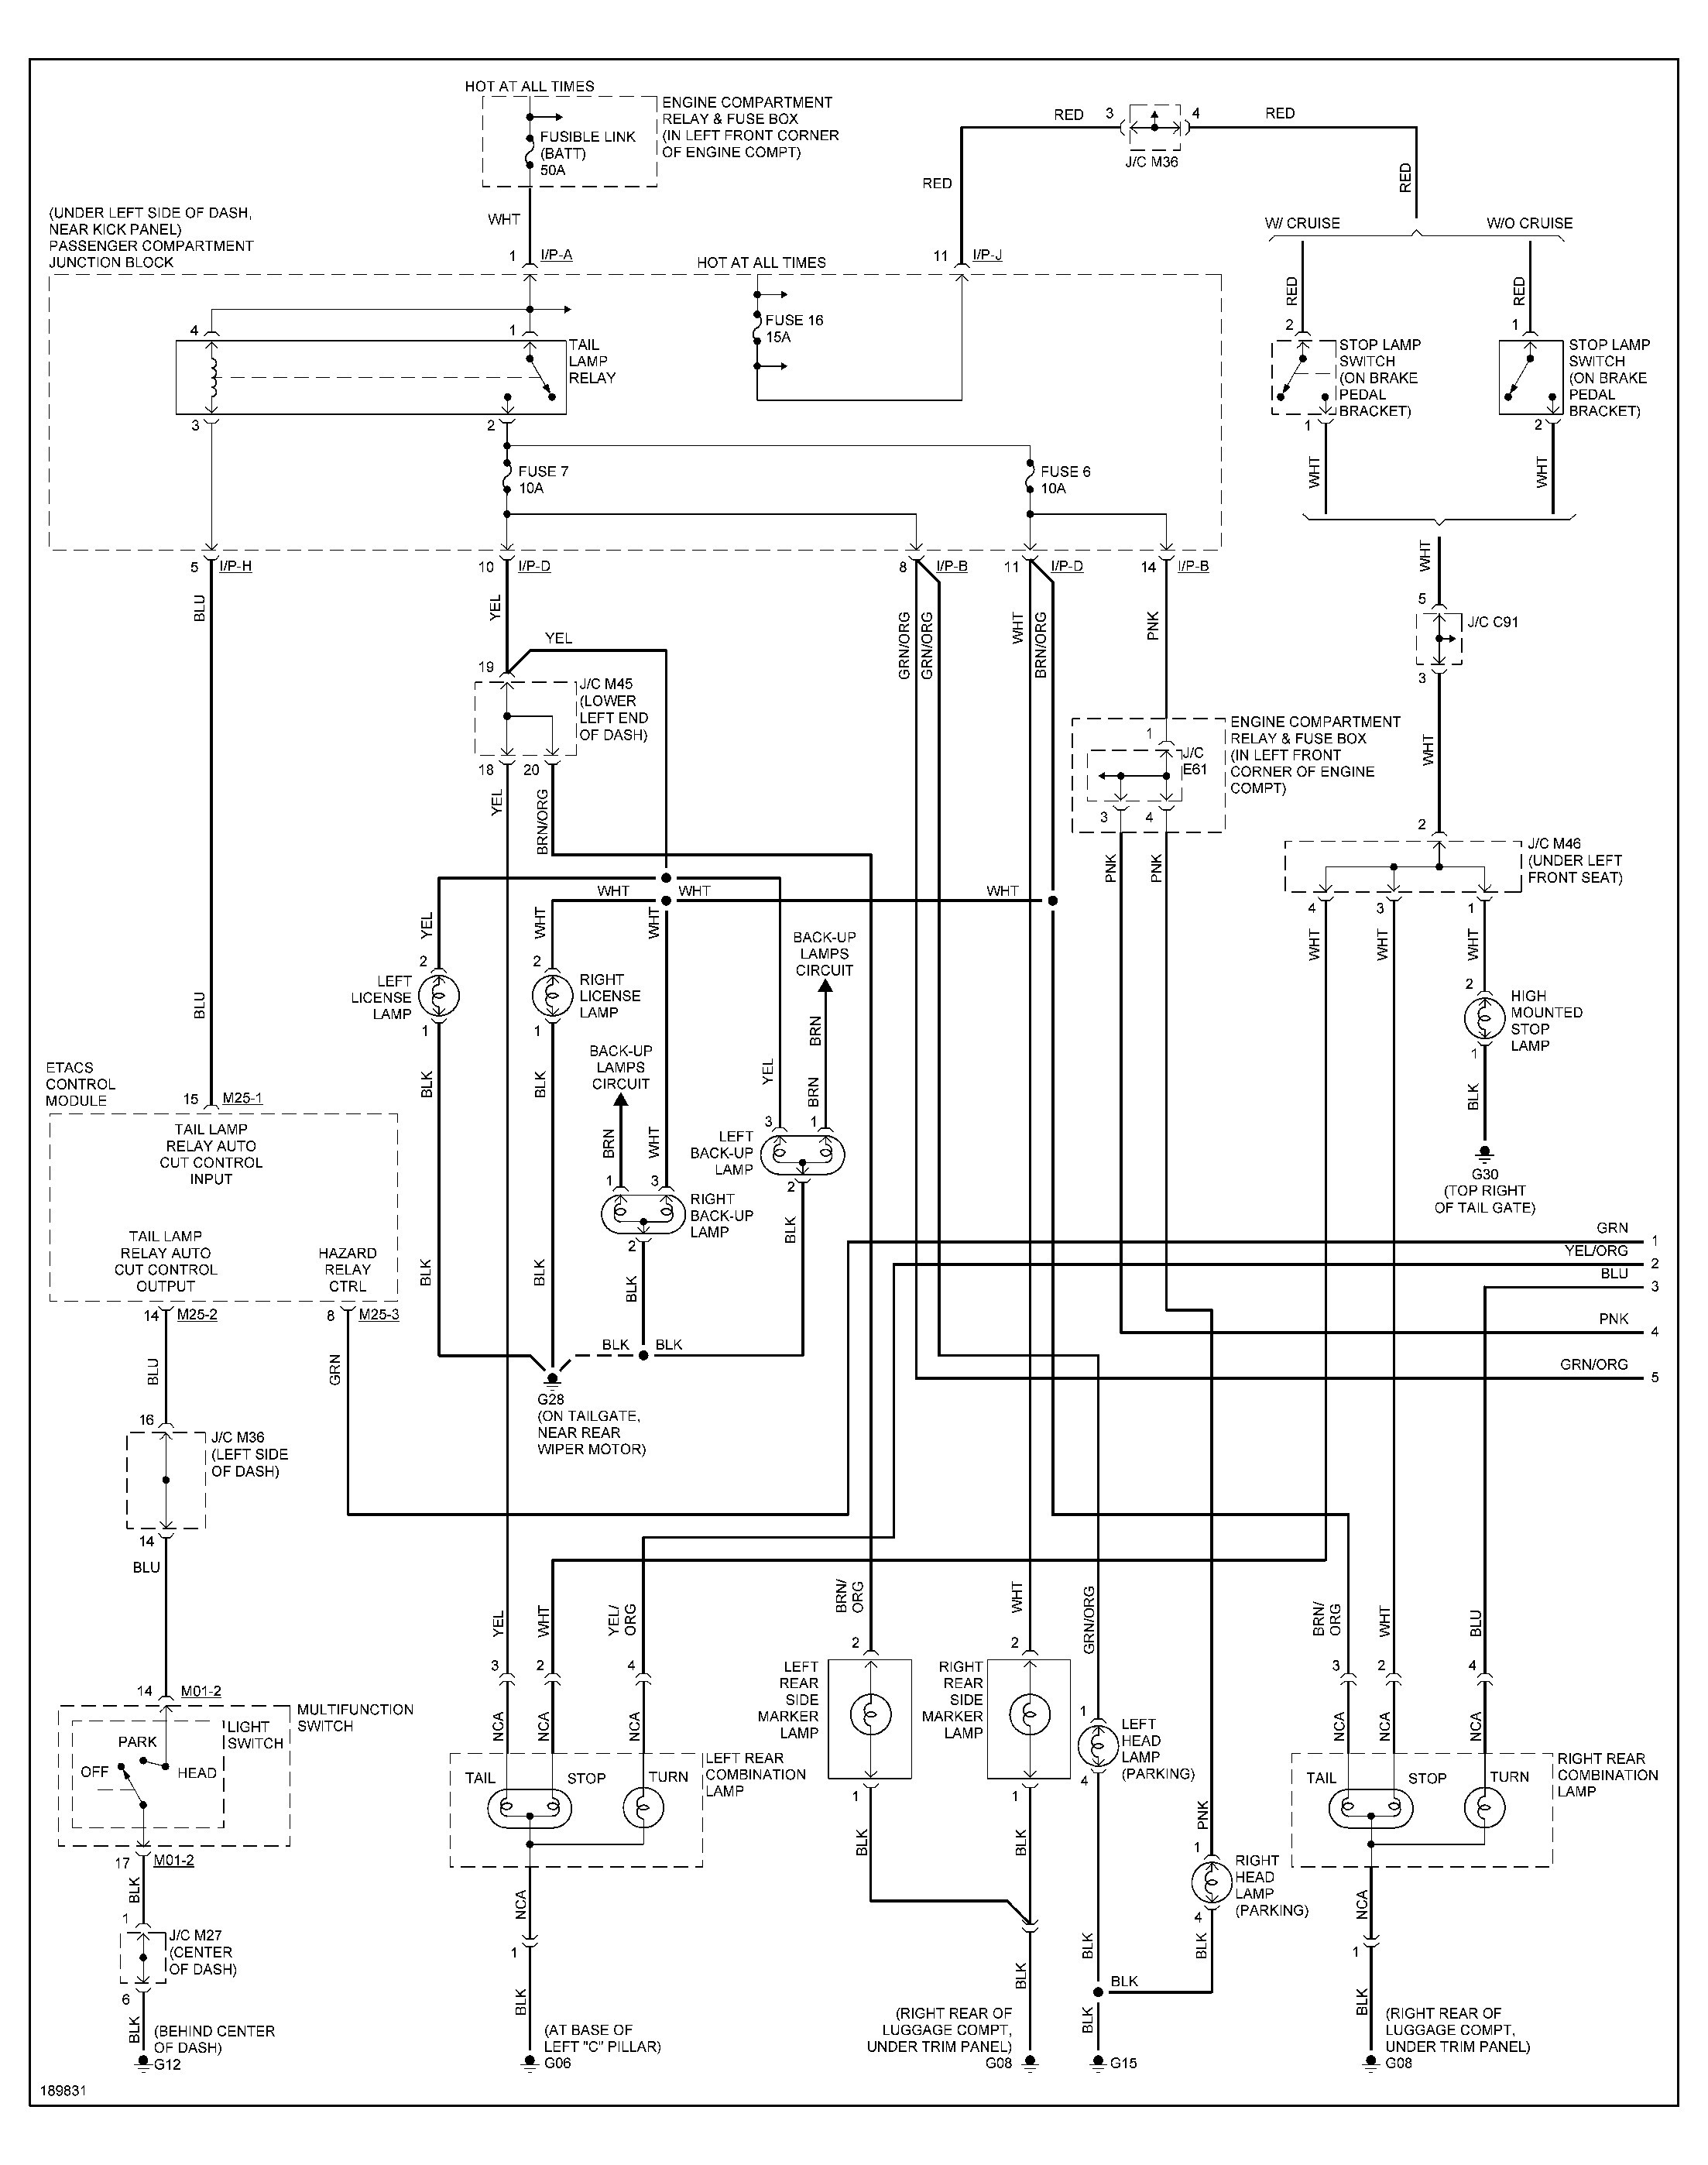 2005 Hyundai Accent Wiring Diagram Wiring Diagram User User Emilia Fise It